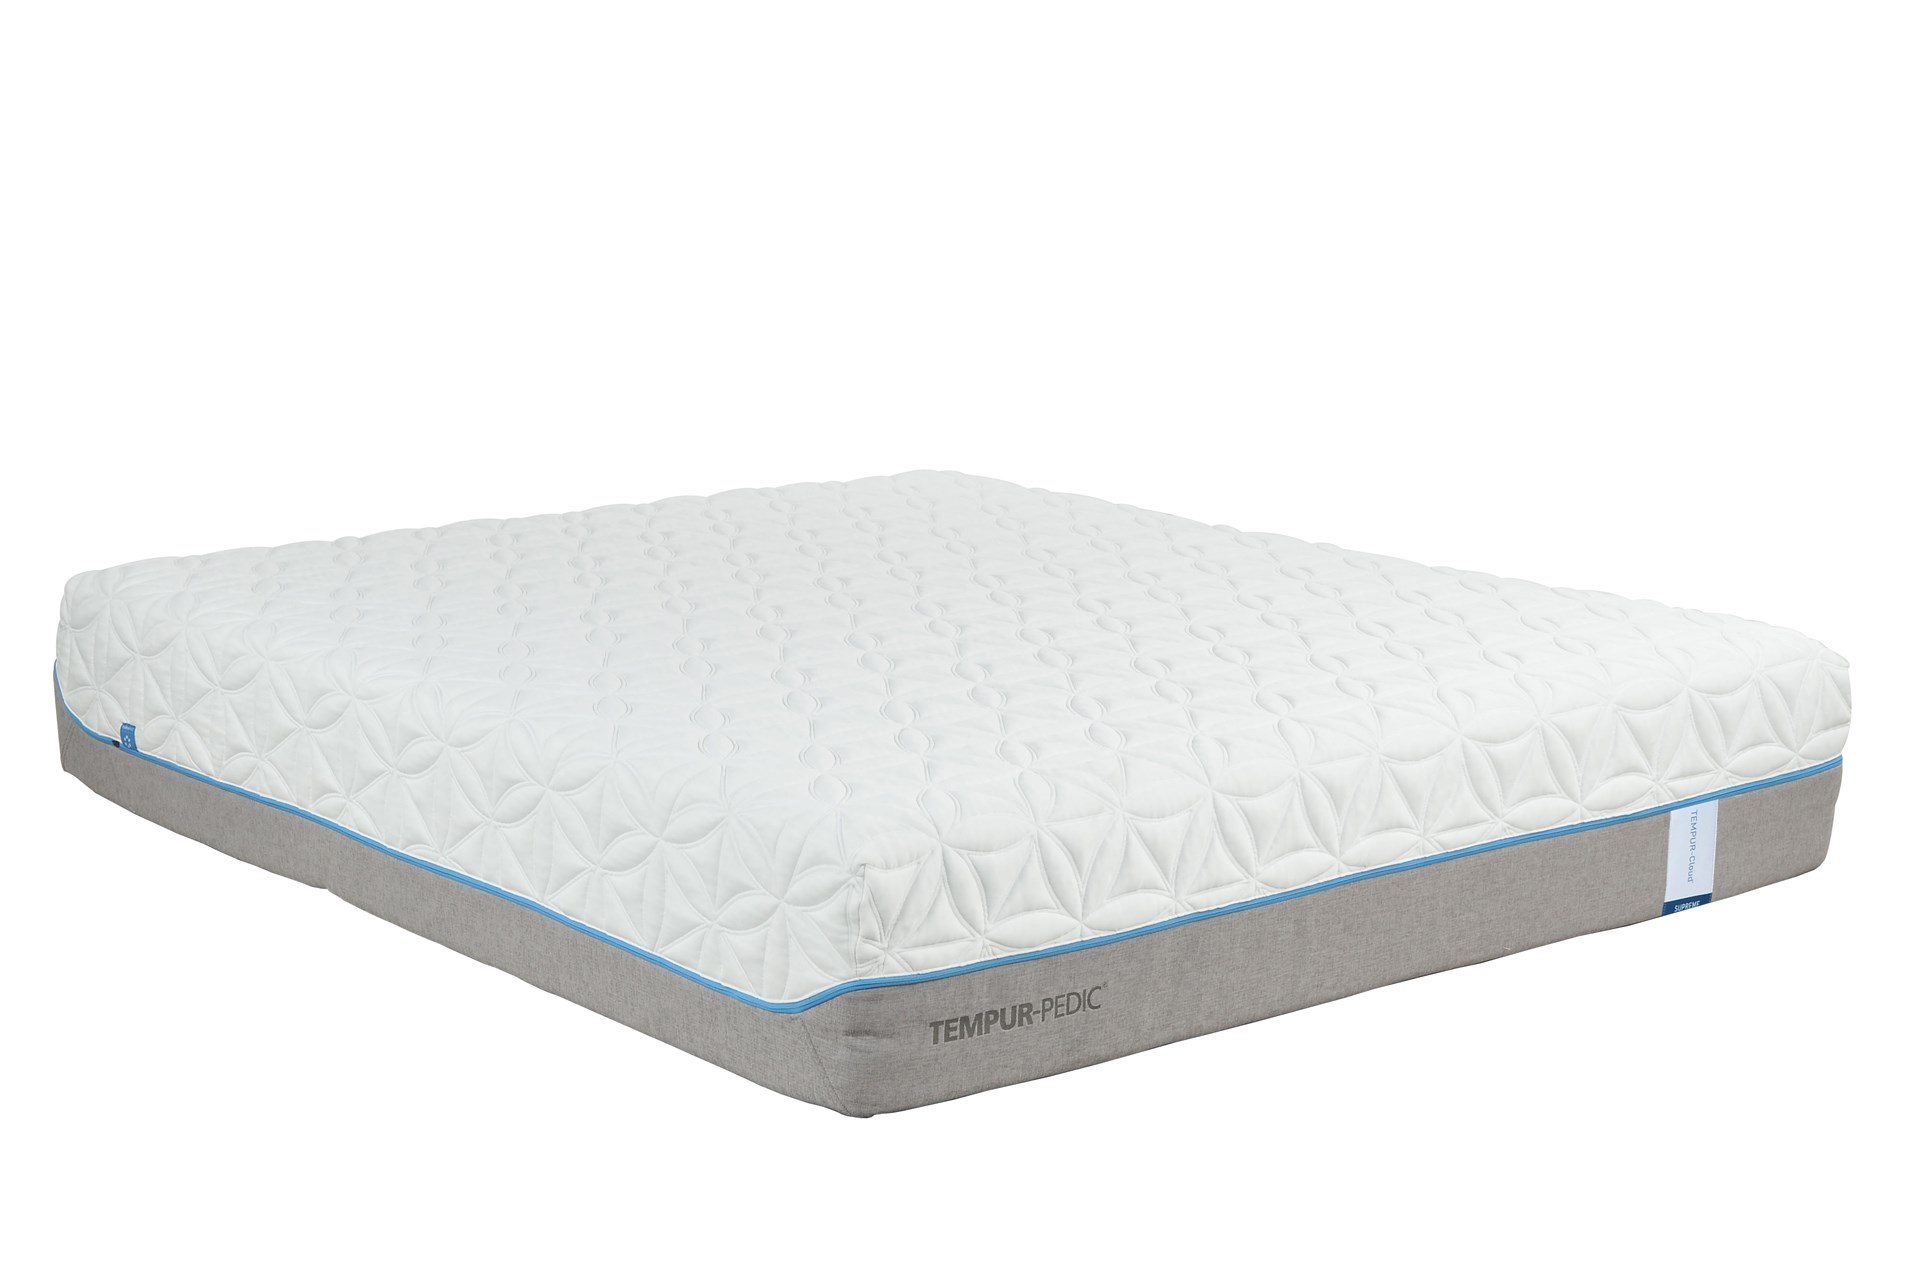 Tempur Pedic Cloud Supreme Eastern King Mattress